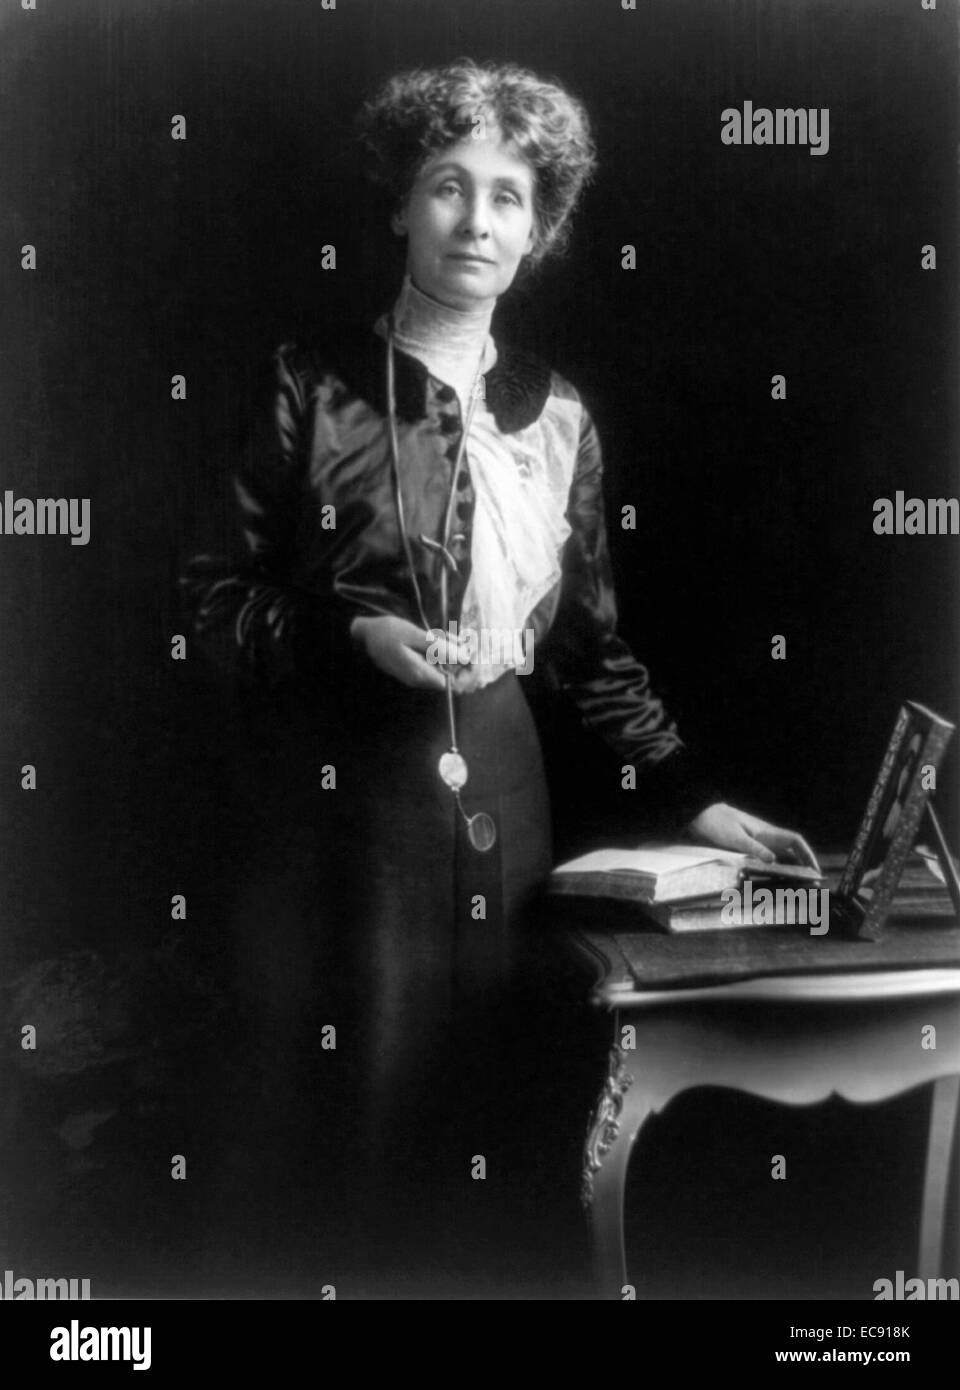 Emmeline Pankhurst was the most prominent of Britain's suffragettes. 1913 - Stock Image